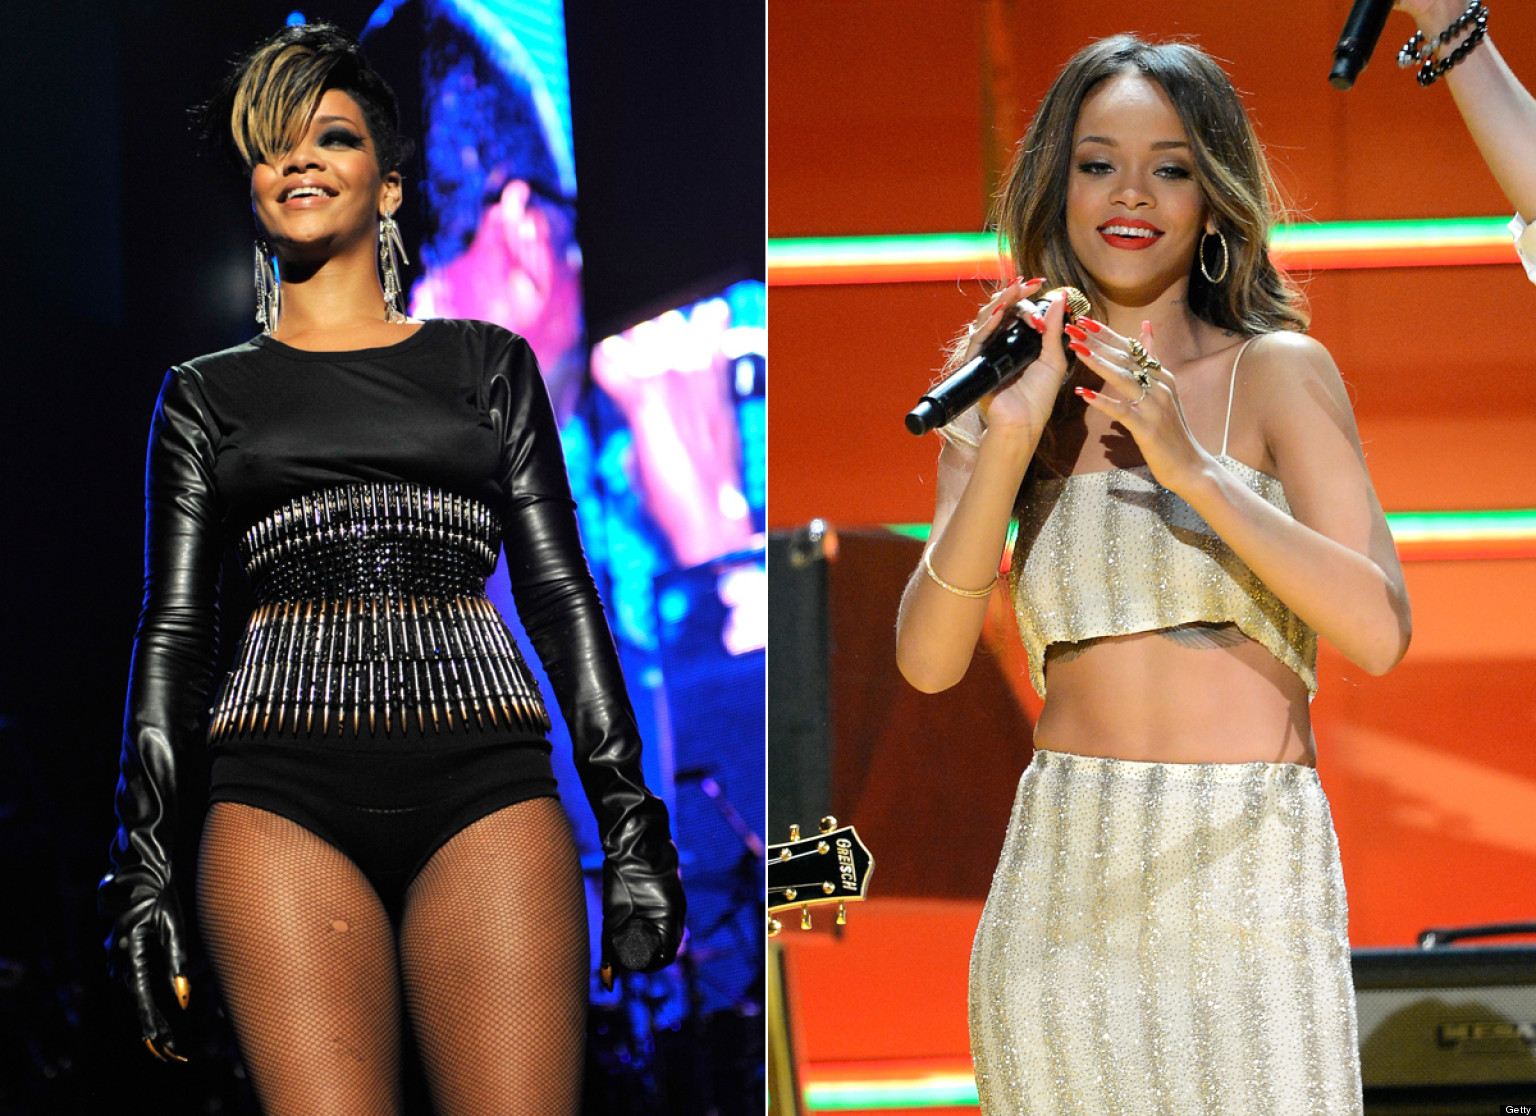 Celebrity Weight Loss: Stars Who've Slimmed Down (PHOTOS)